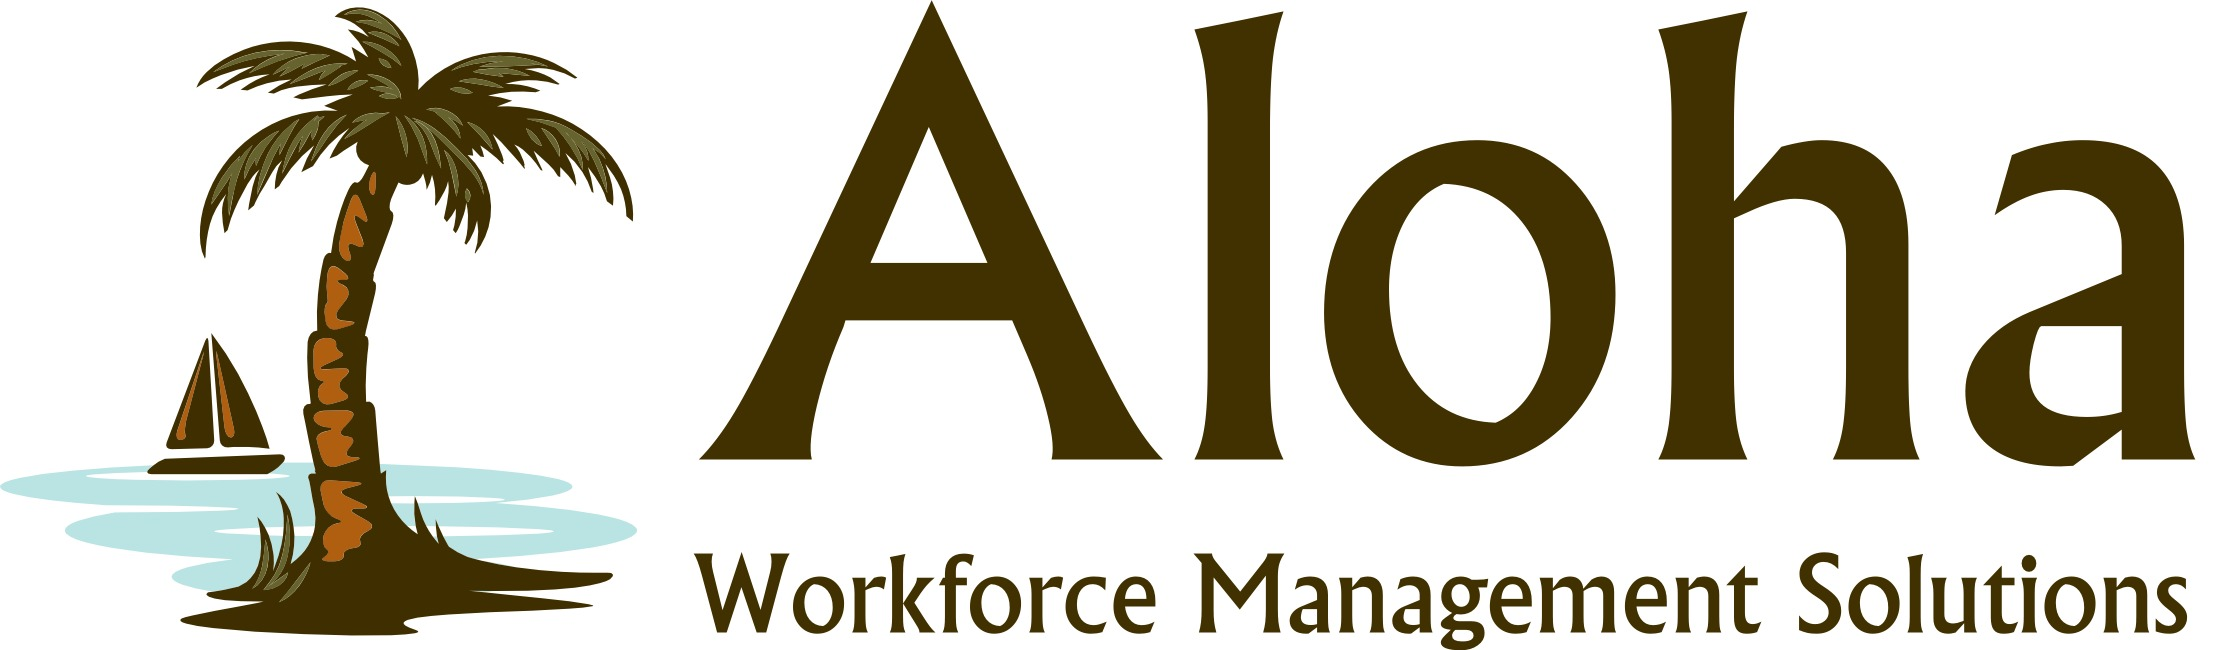 Aloha Workforce Management Solutions